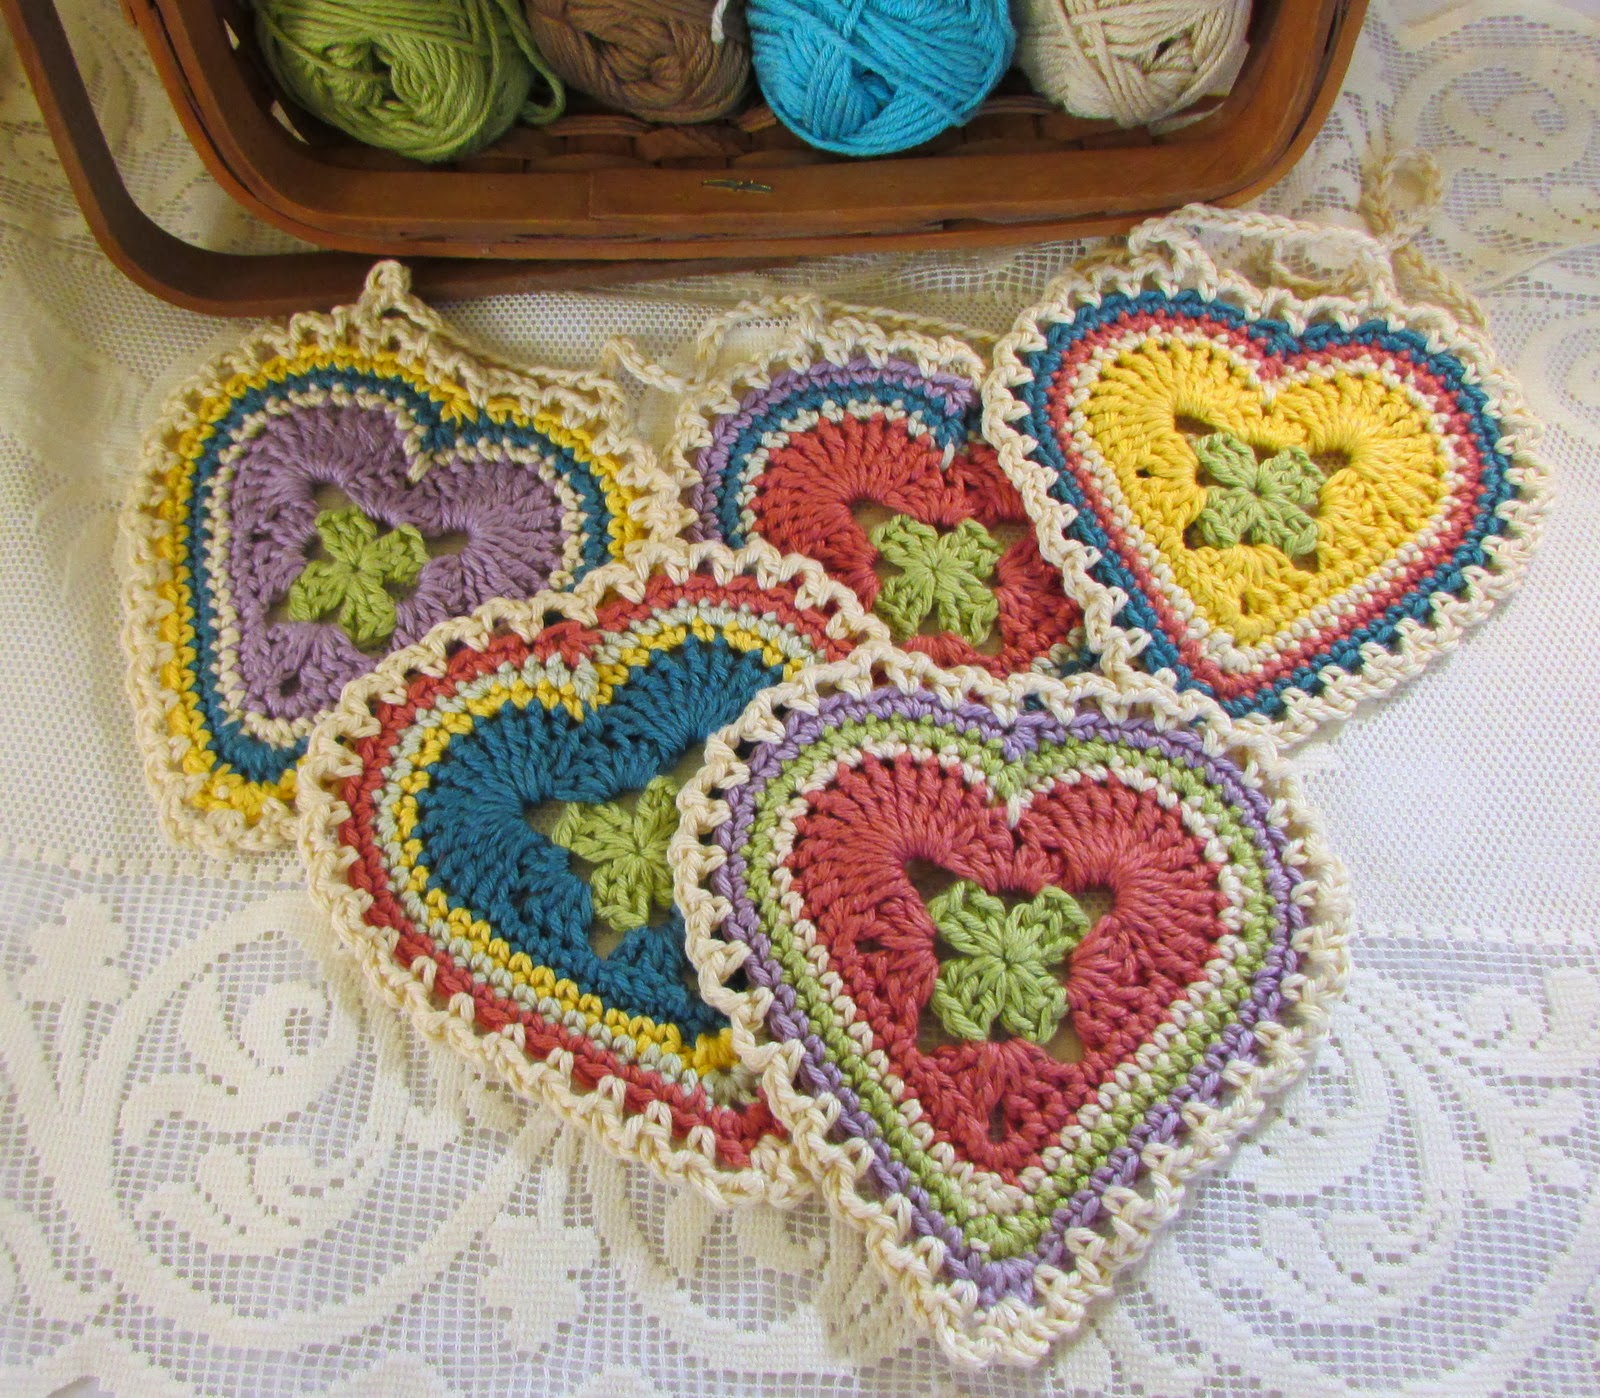 Crochet Granny Square Heart Patterns : Nancy Drew Designs: Granny Sweet Heart Pattern